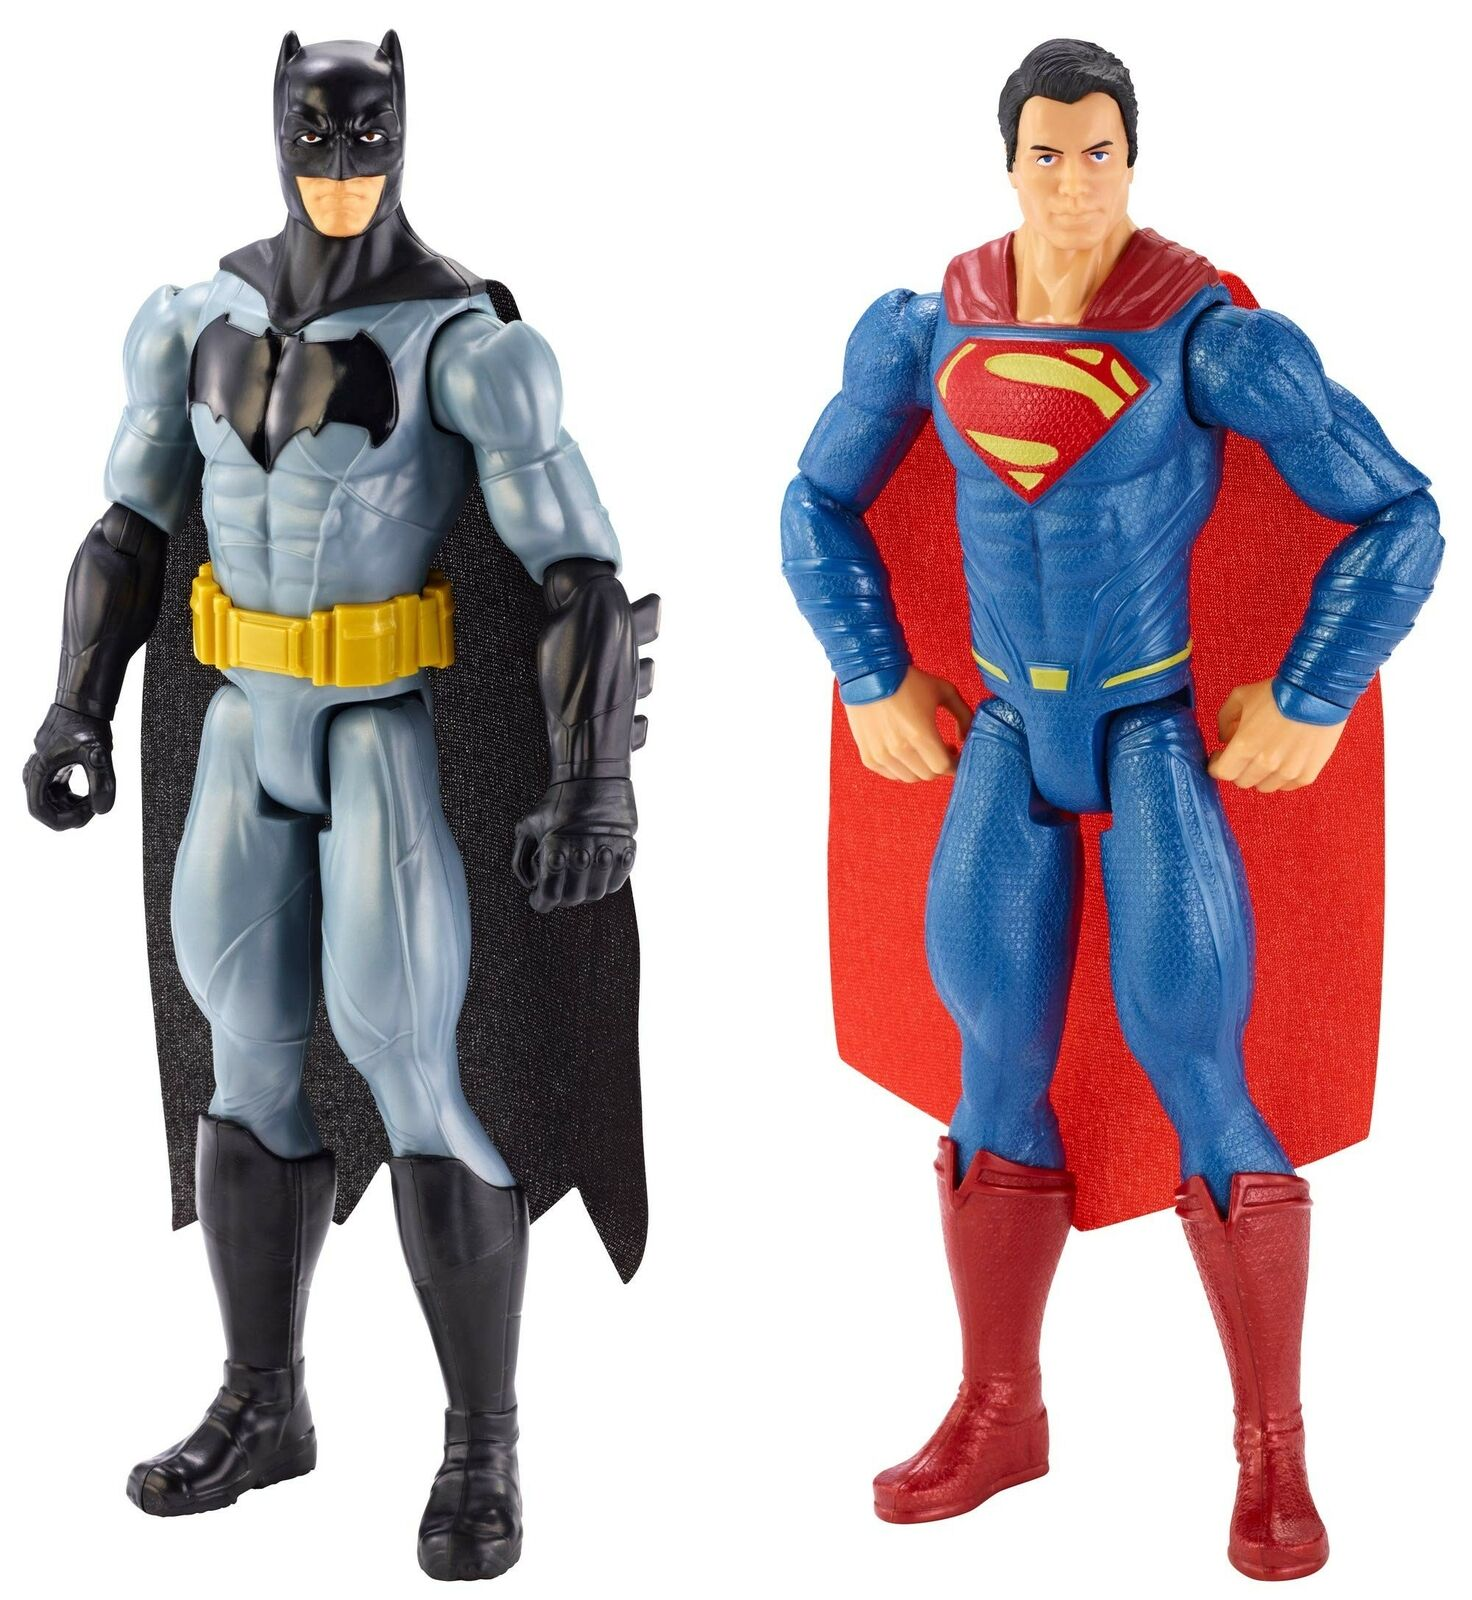 Figure di Batman VS Superman - 12 pollici, confezione da 2